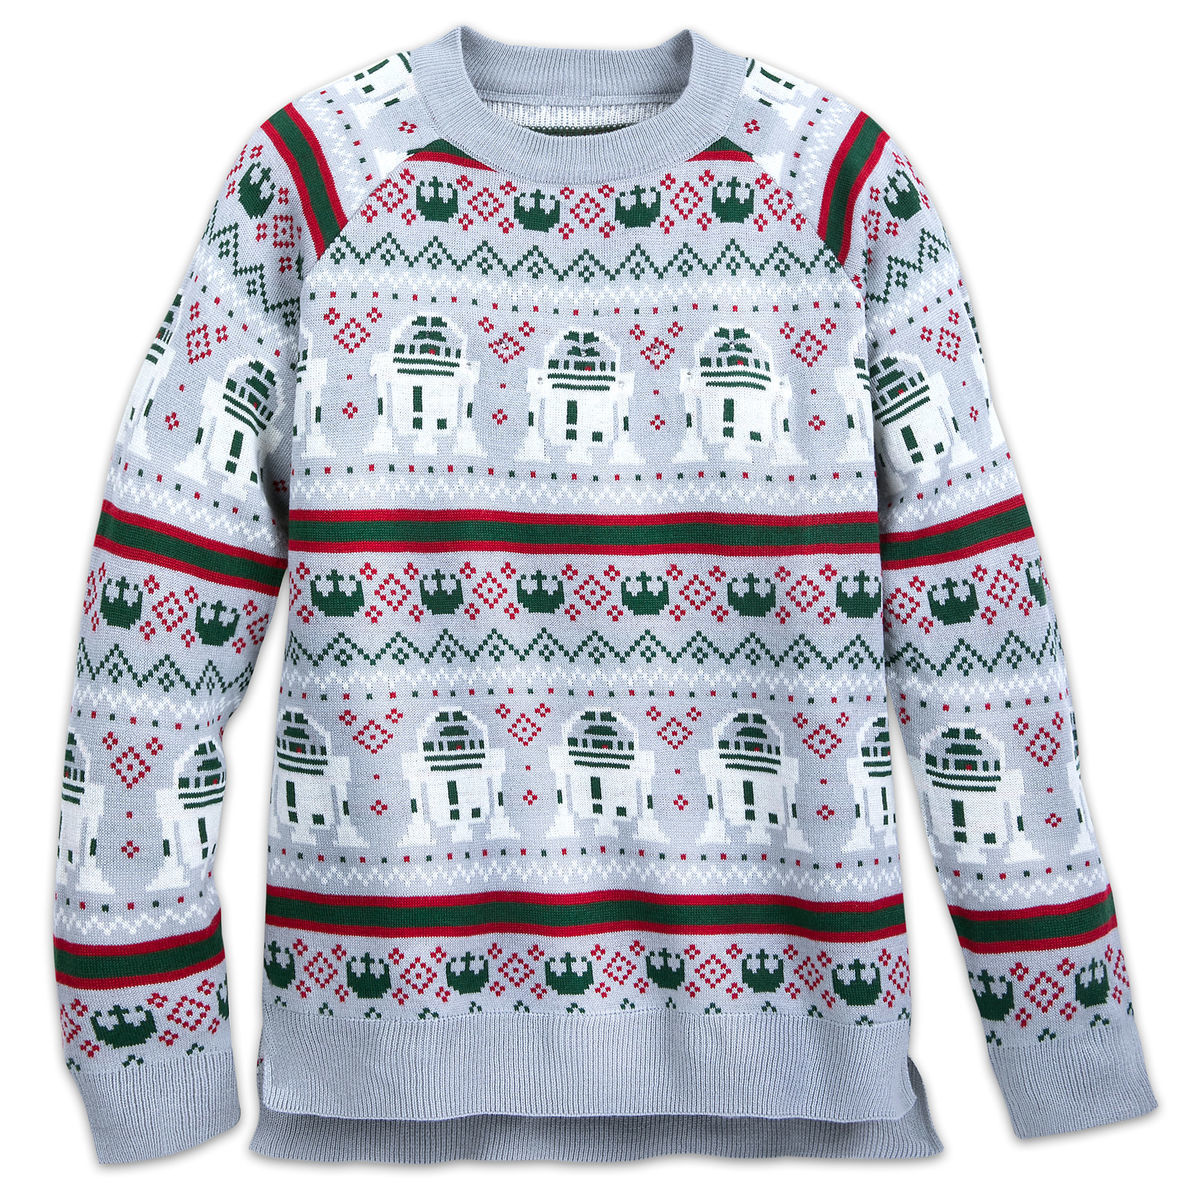 Product Image of Star Wars Light-Up Holiday Sweater for Adults # 1